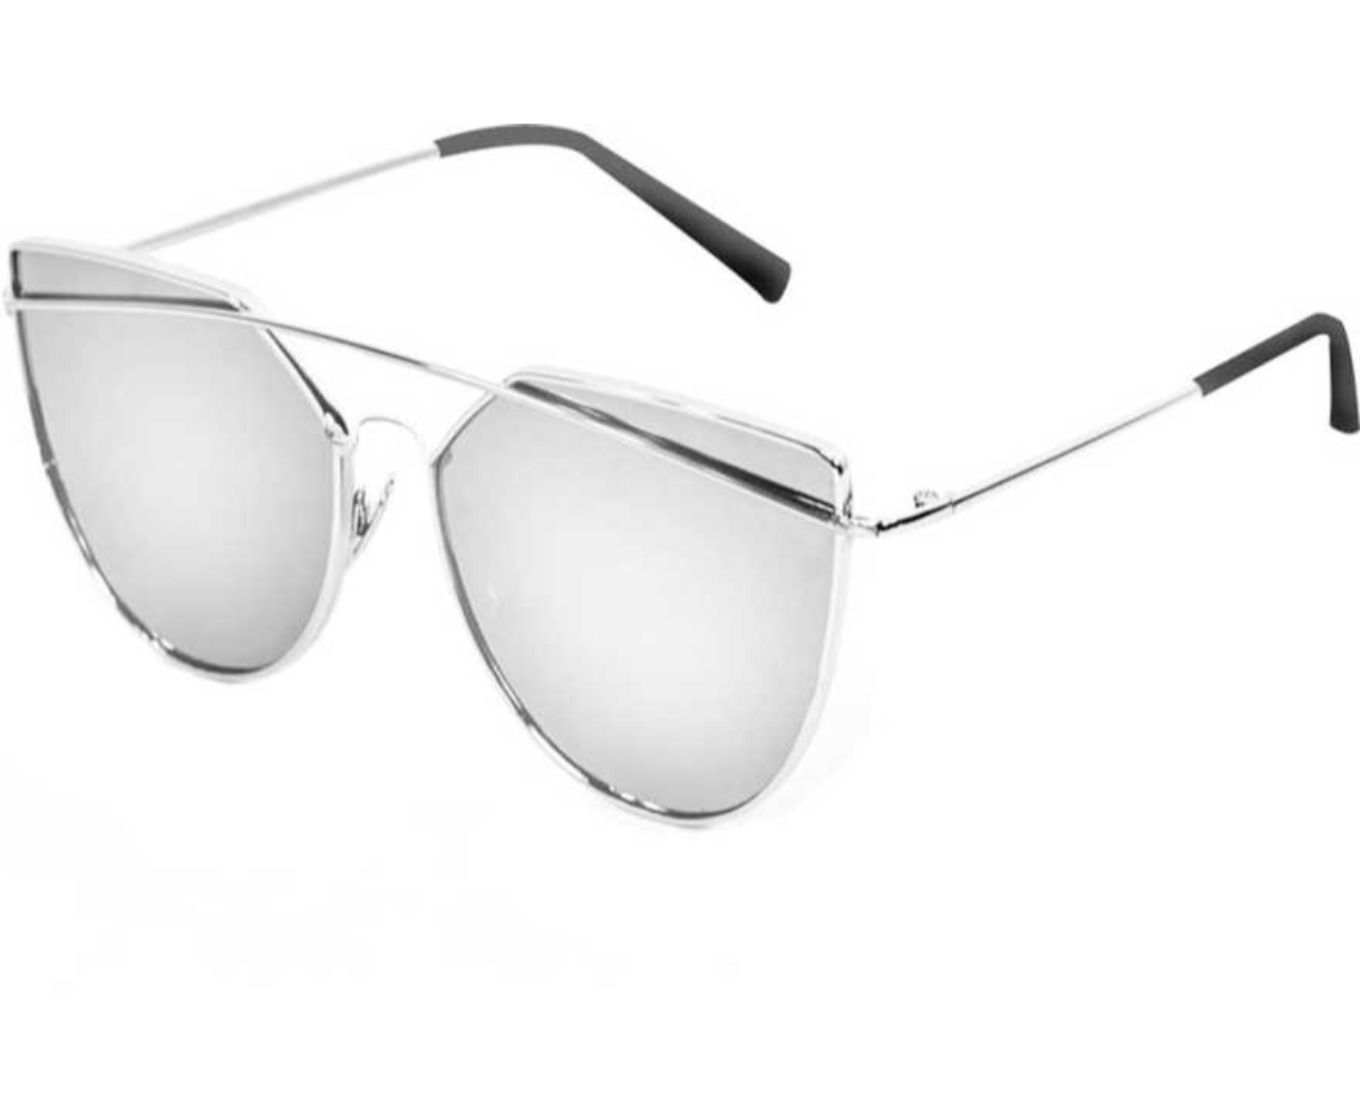 ETRG Unisex Premium  Oval Frames Silver Metal Sunglasses (Pack of 2)